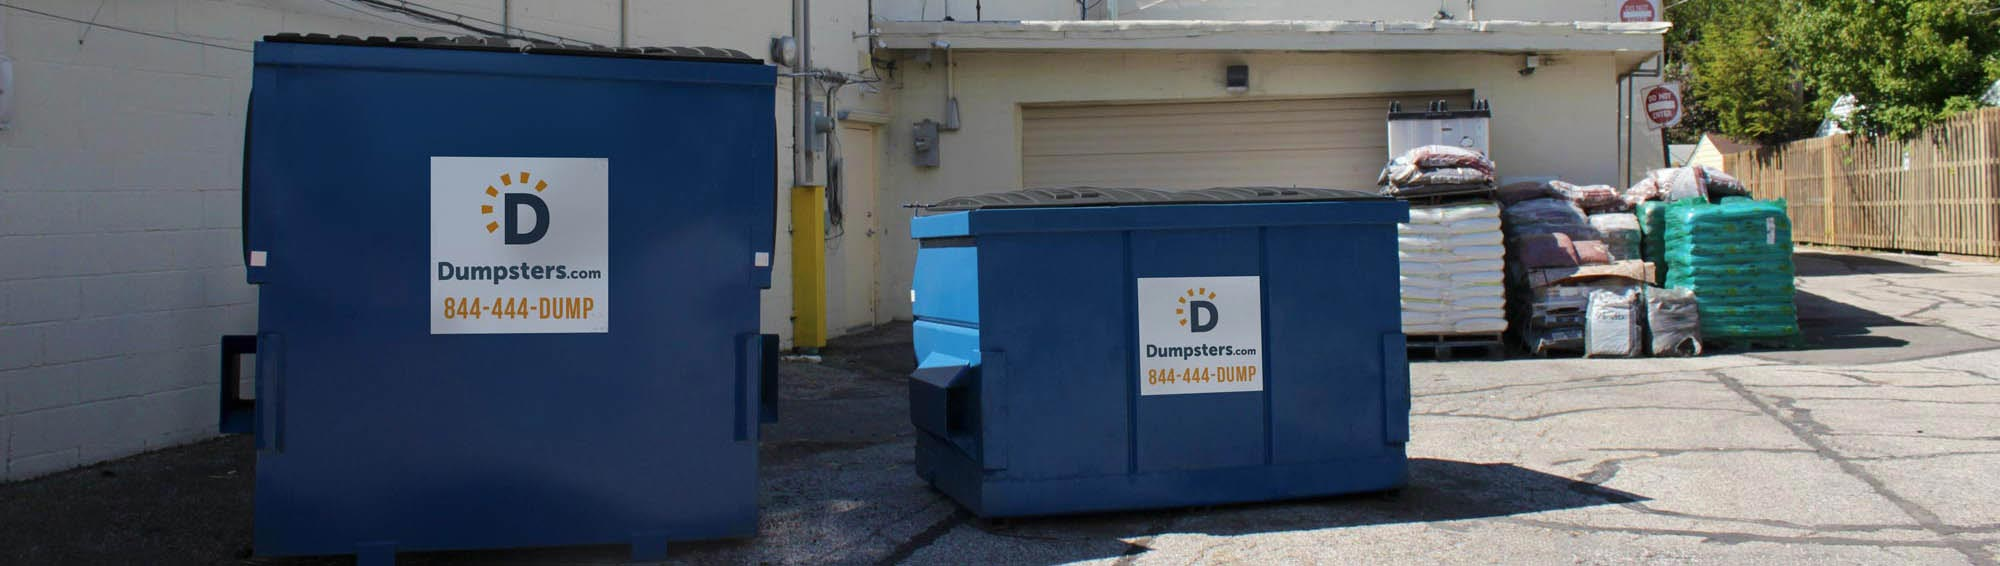 dumpsters for restaurants and grocery stores